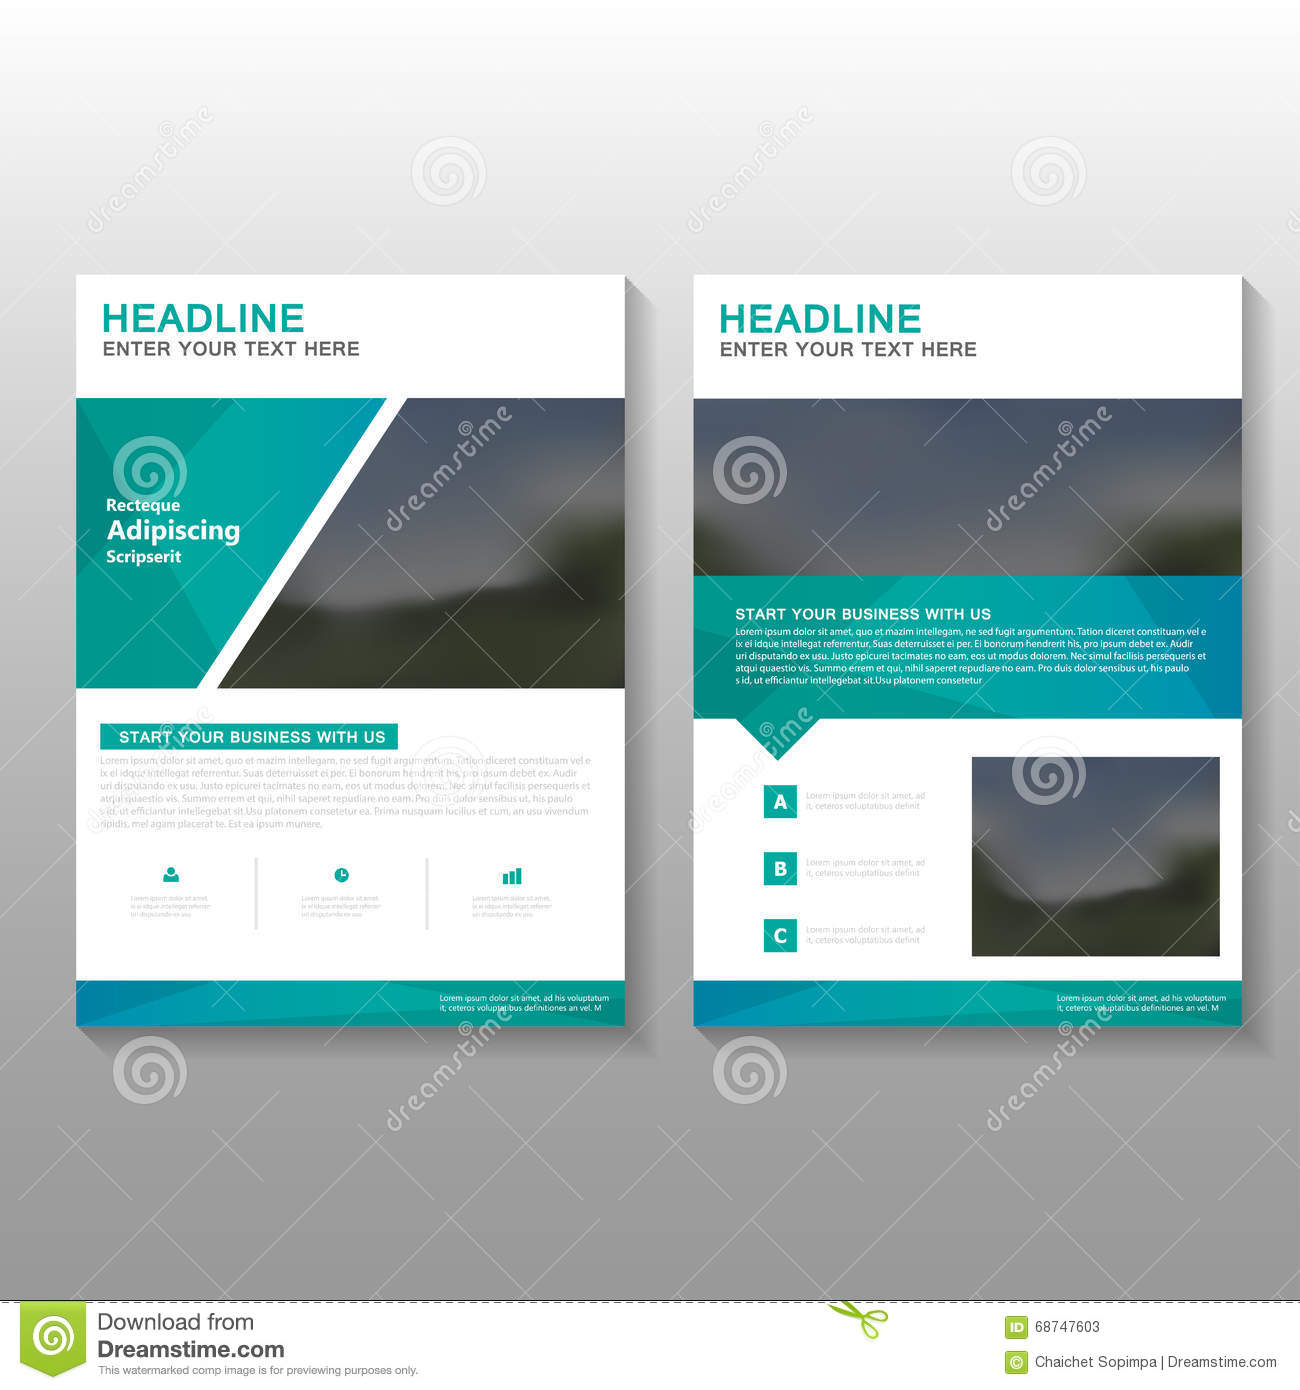 Green elegance vector leaflet brochure flyer business proposal green elegance vector leaflet brochure flyer business proposal template design book cover layout design abstract green template stock vector flashek